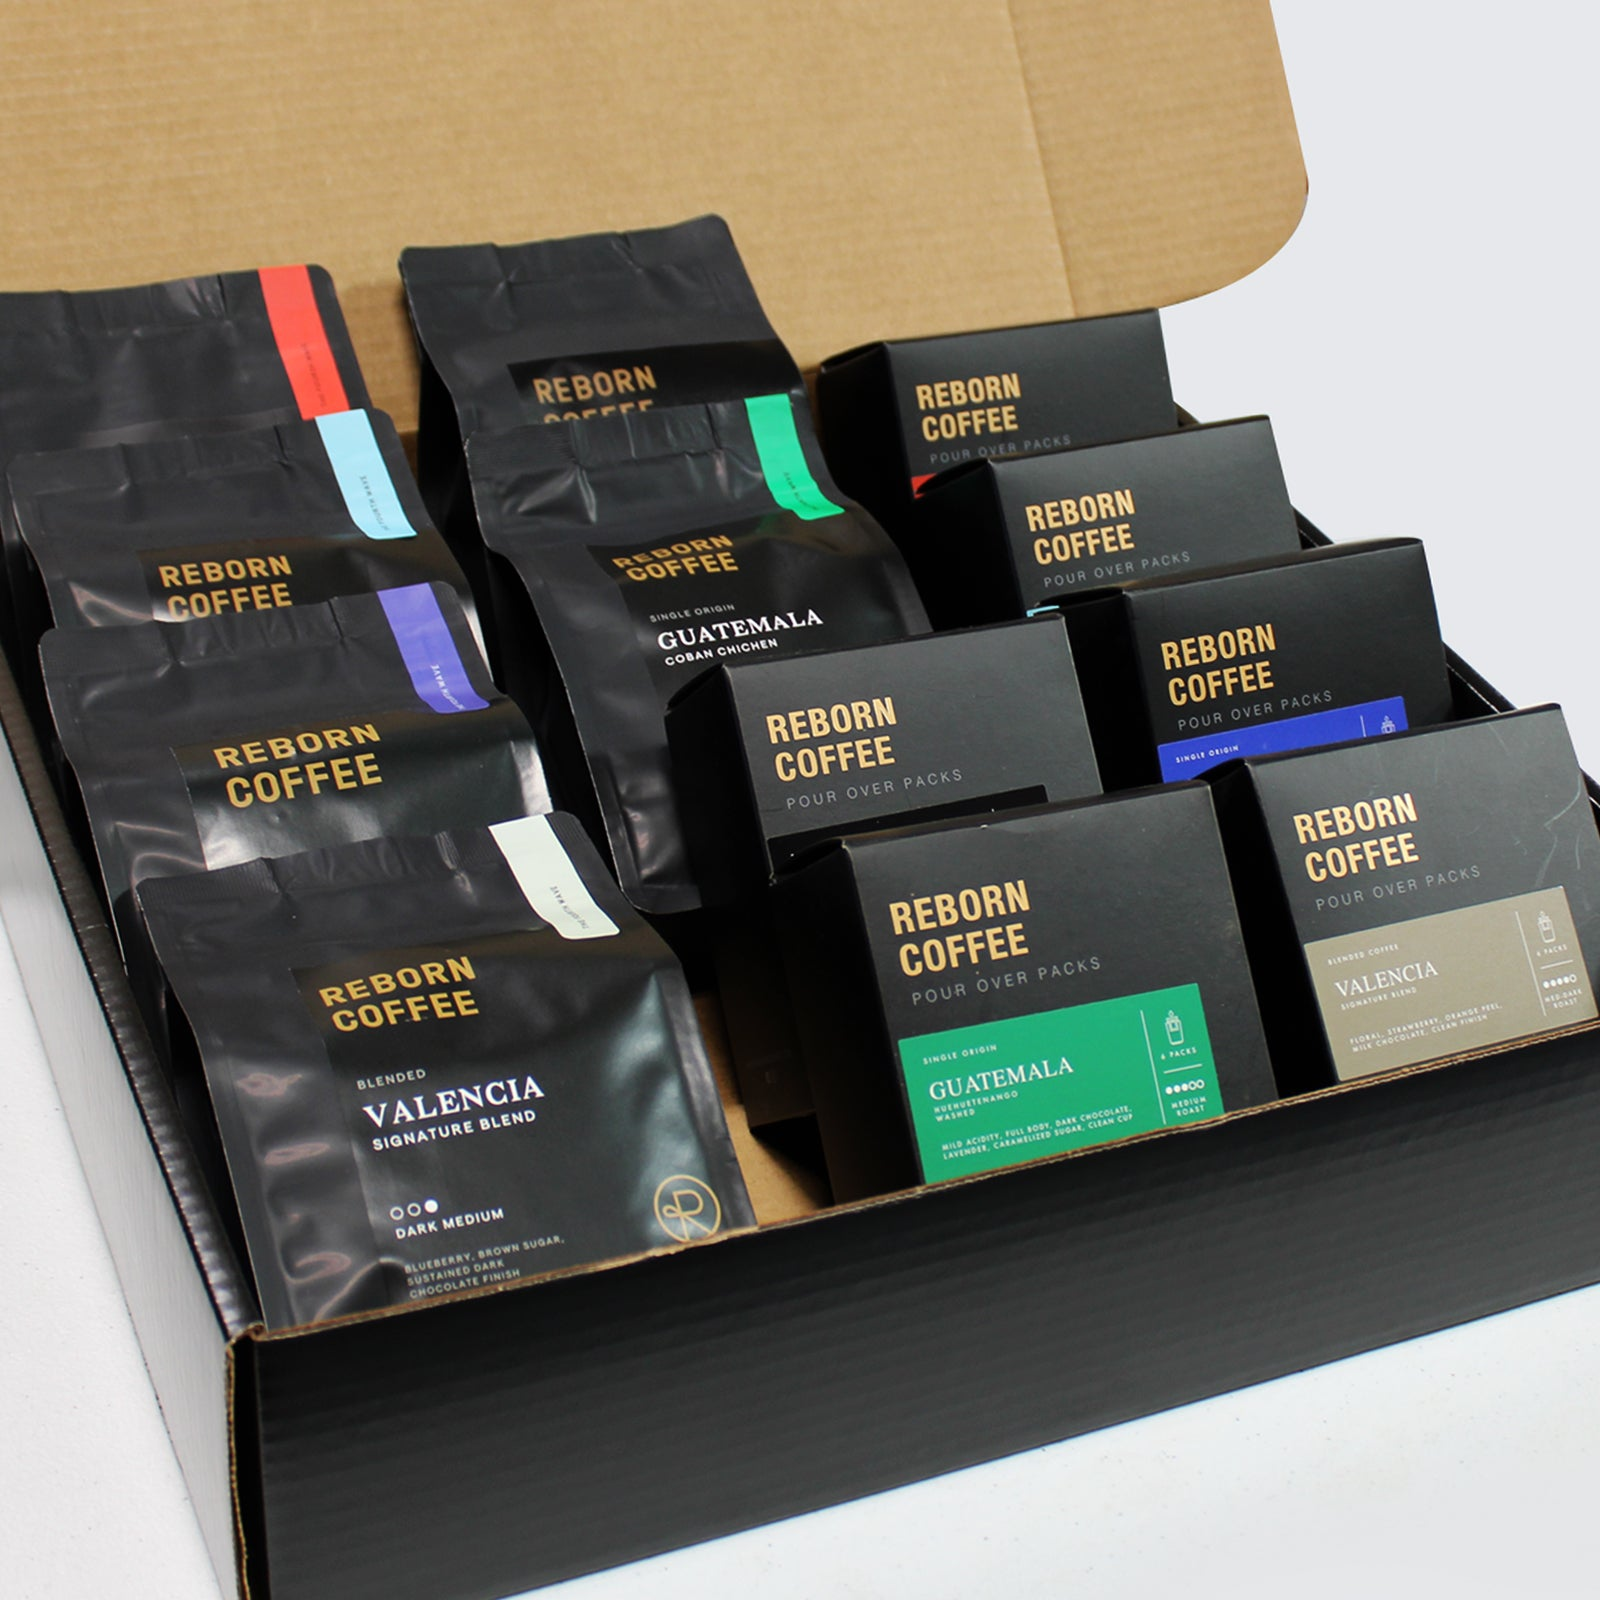 Reborn Coffee special gift set-The VIP Premier Coffee Gift sets. ship within 24 hours of being freshly roasted. Premium Specialty Coffees Gift Box. Gourmet Coffee Gift Set. Deluxe Coffee Gift set for Birthday, housewarming, Christmas.